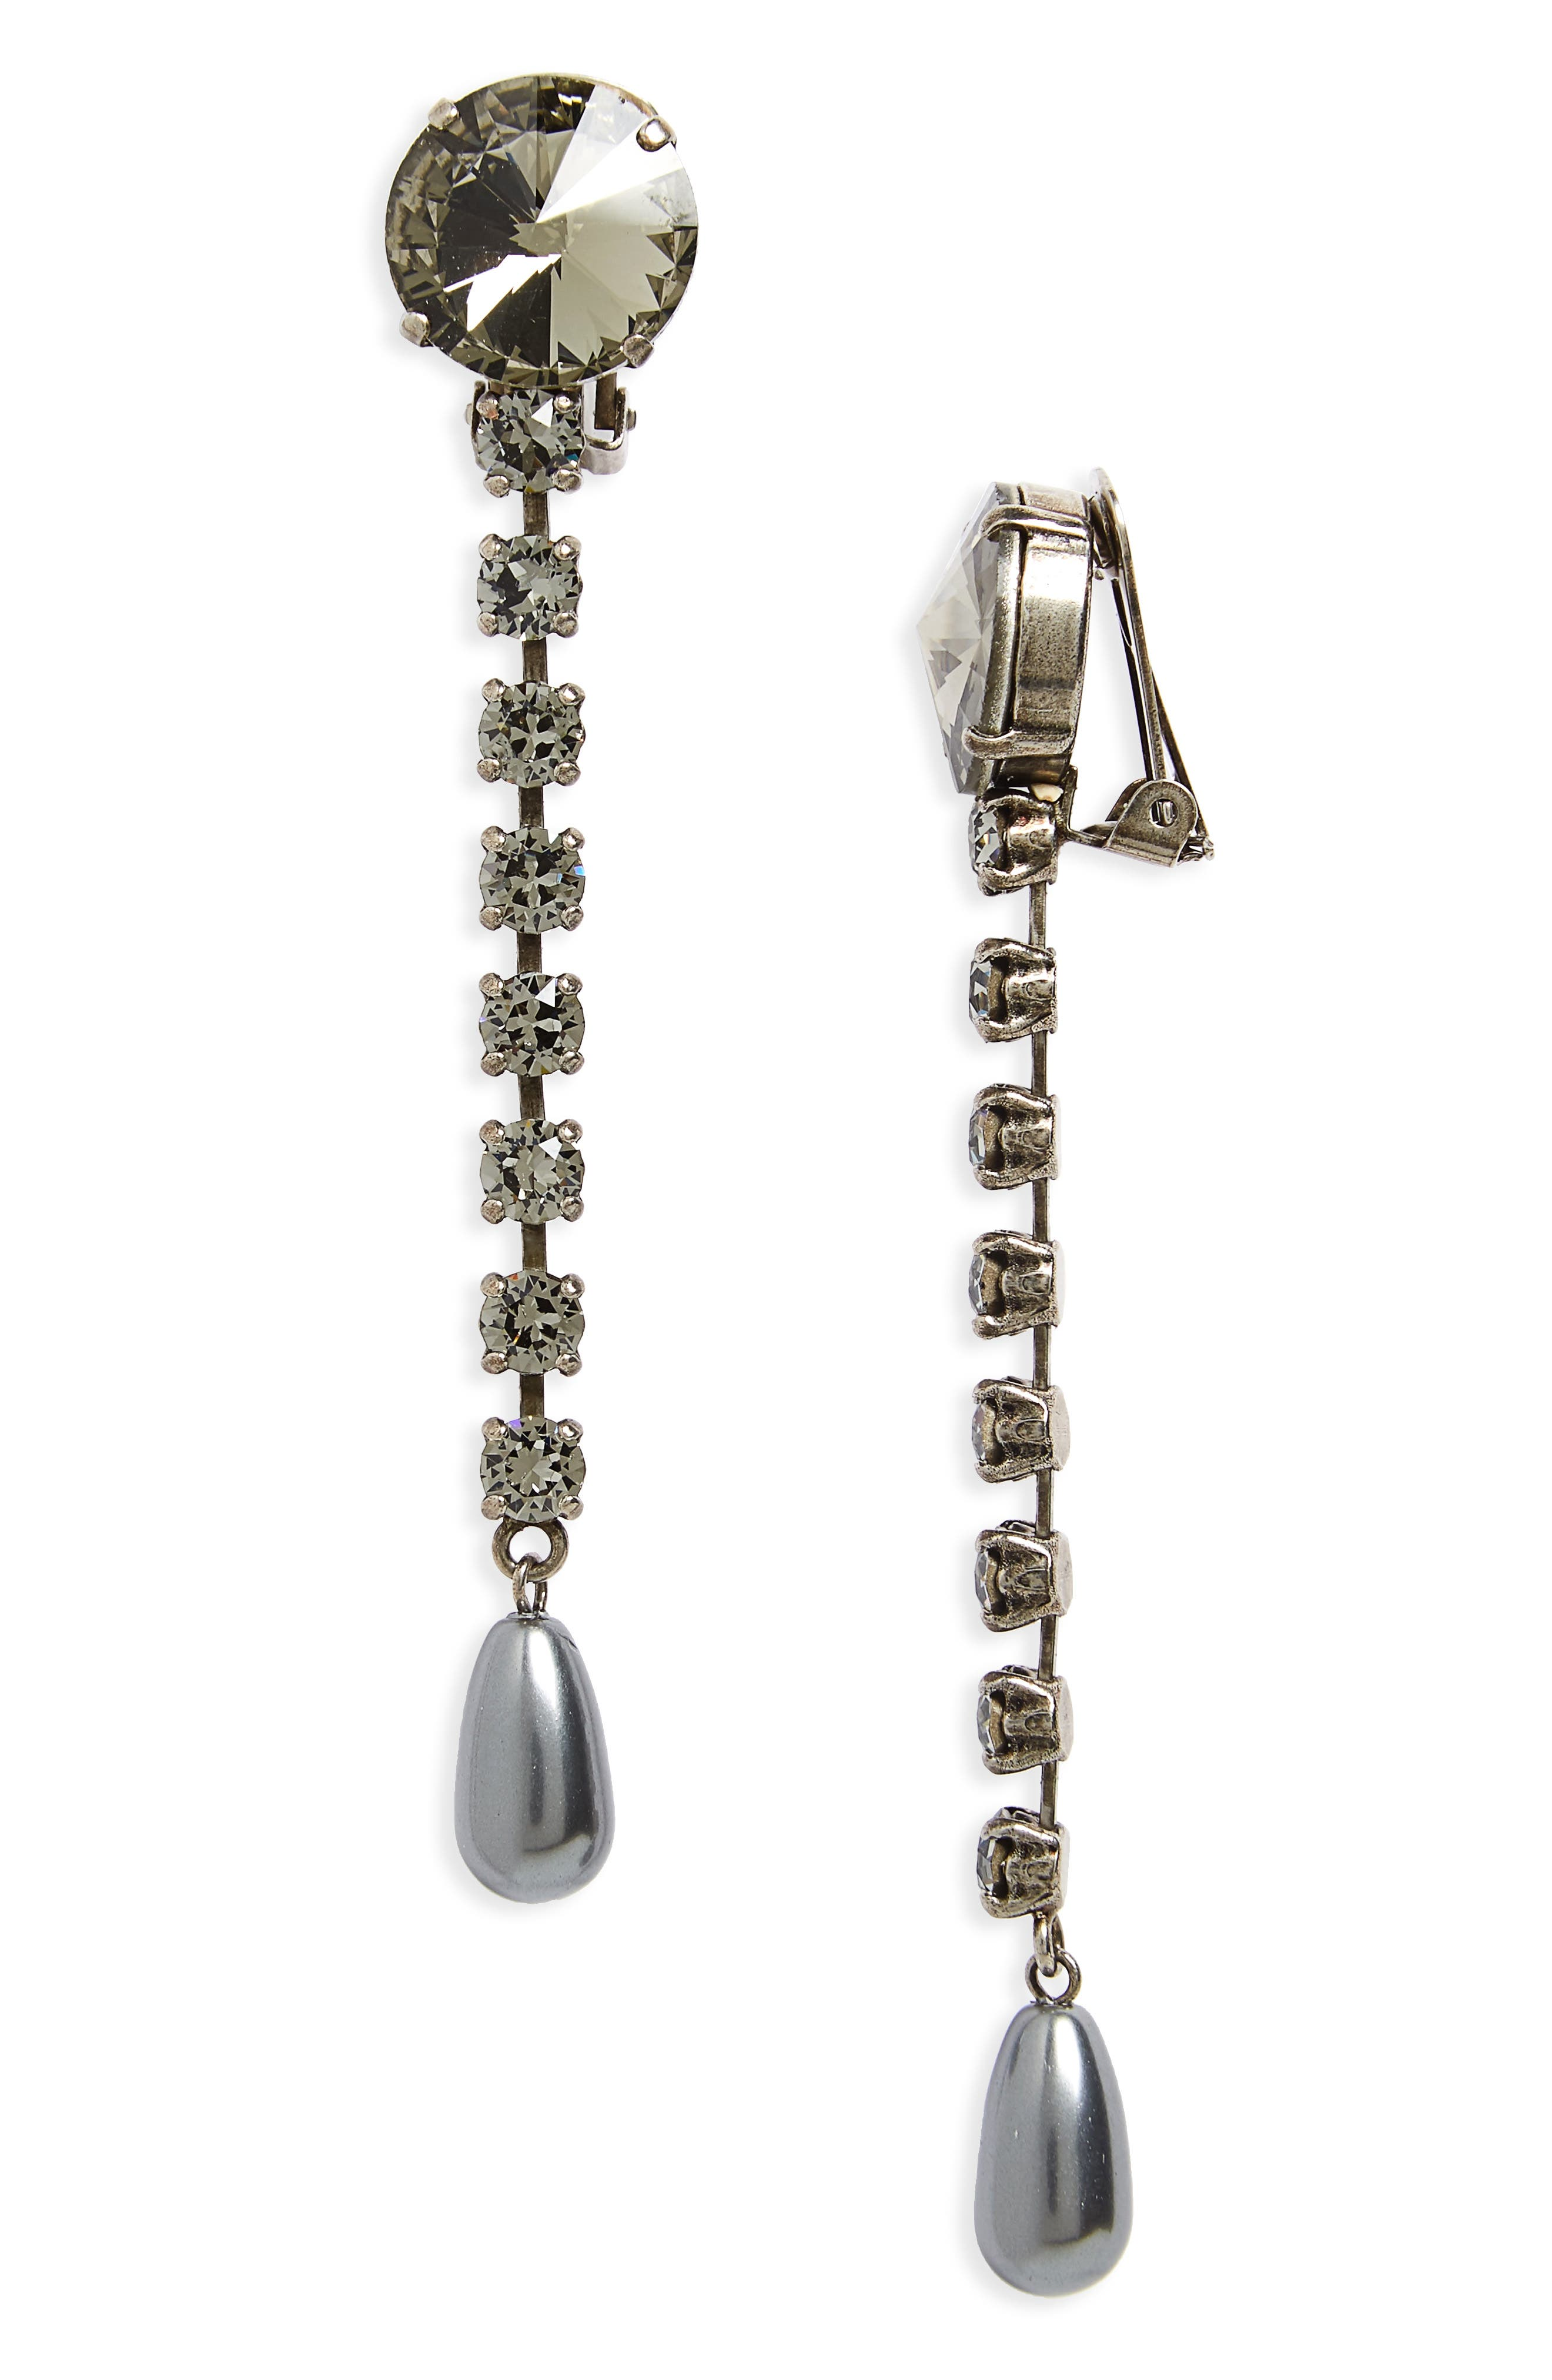 Queen Jewels Classic Crystal & Imitation Pearl Drop Earrings, Dk Grey/ Fume